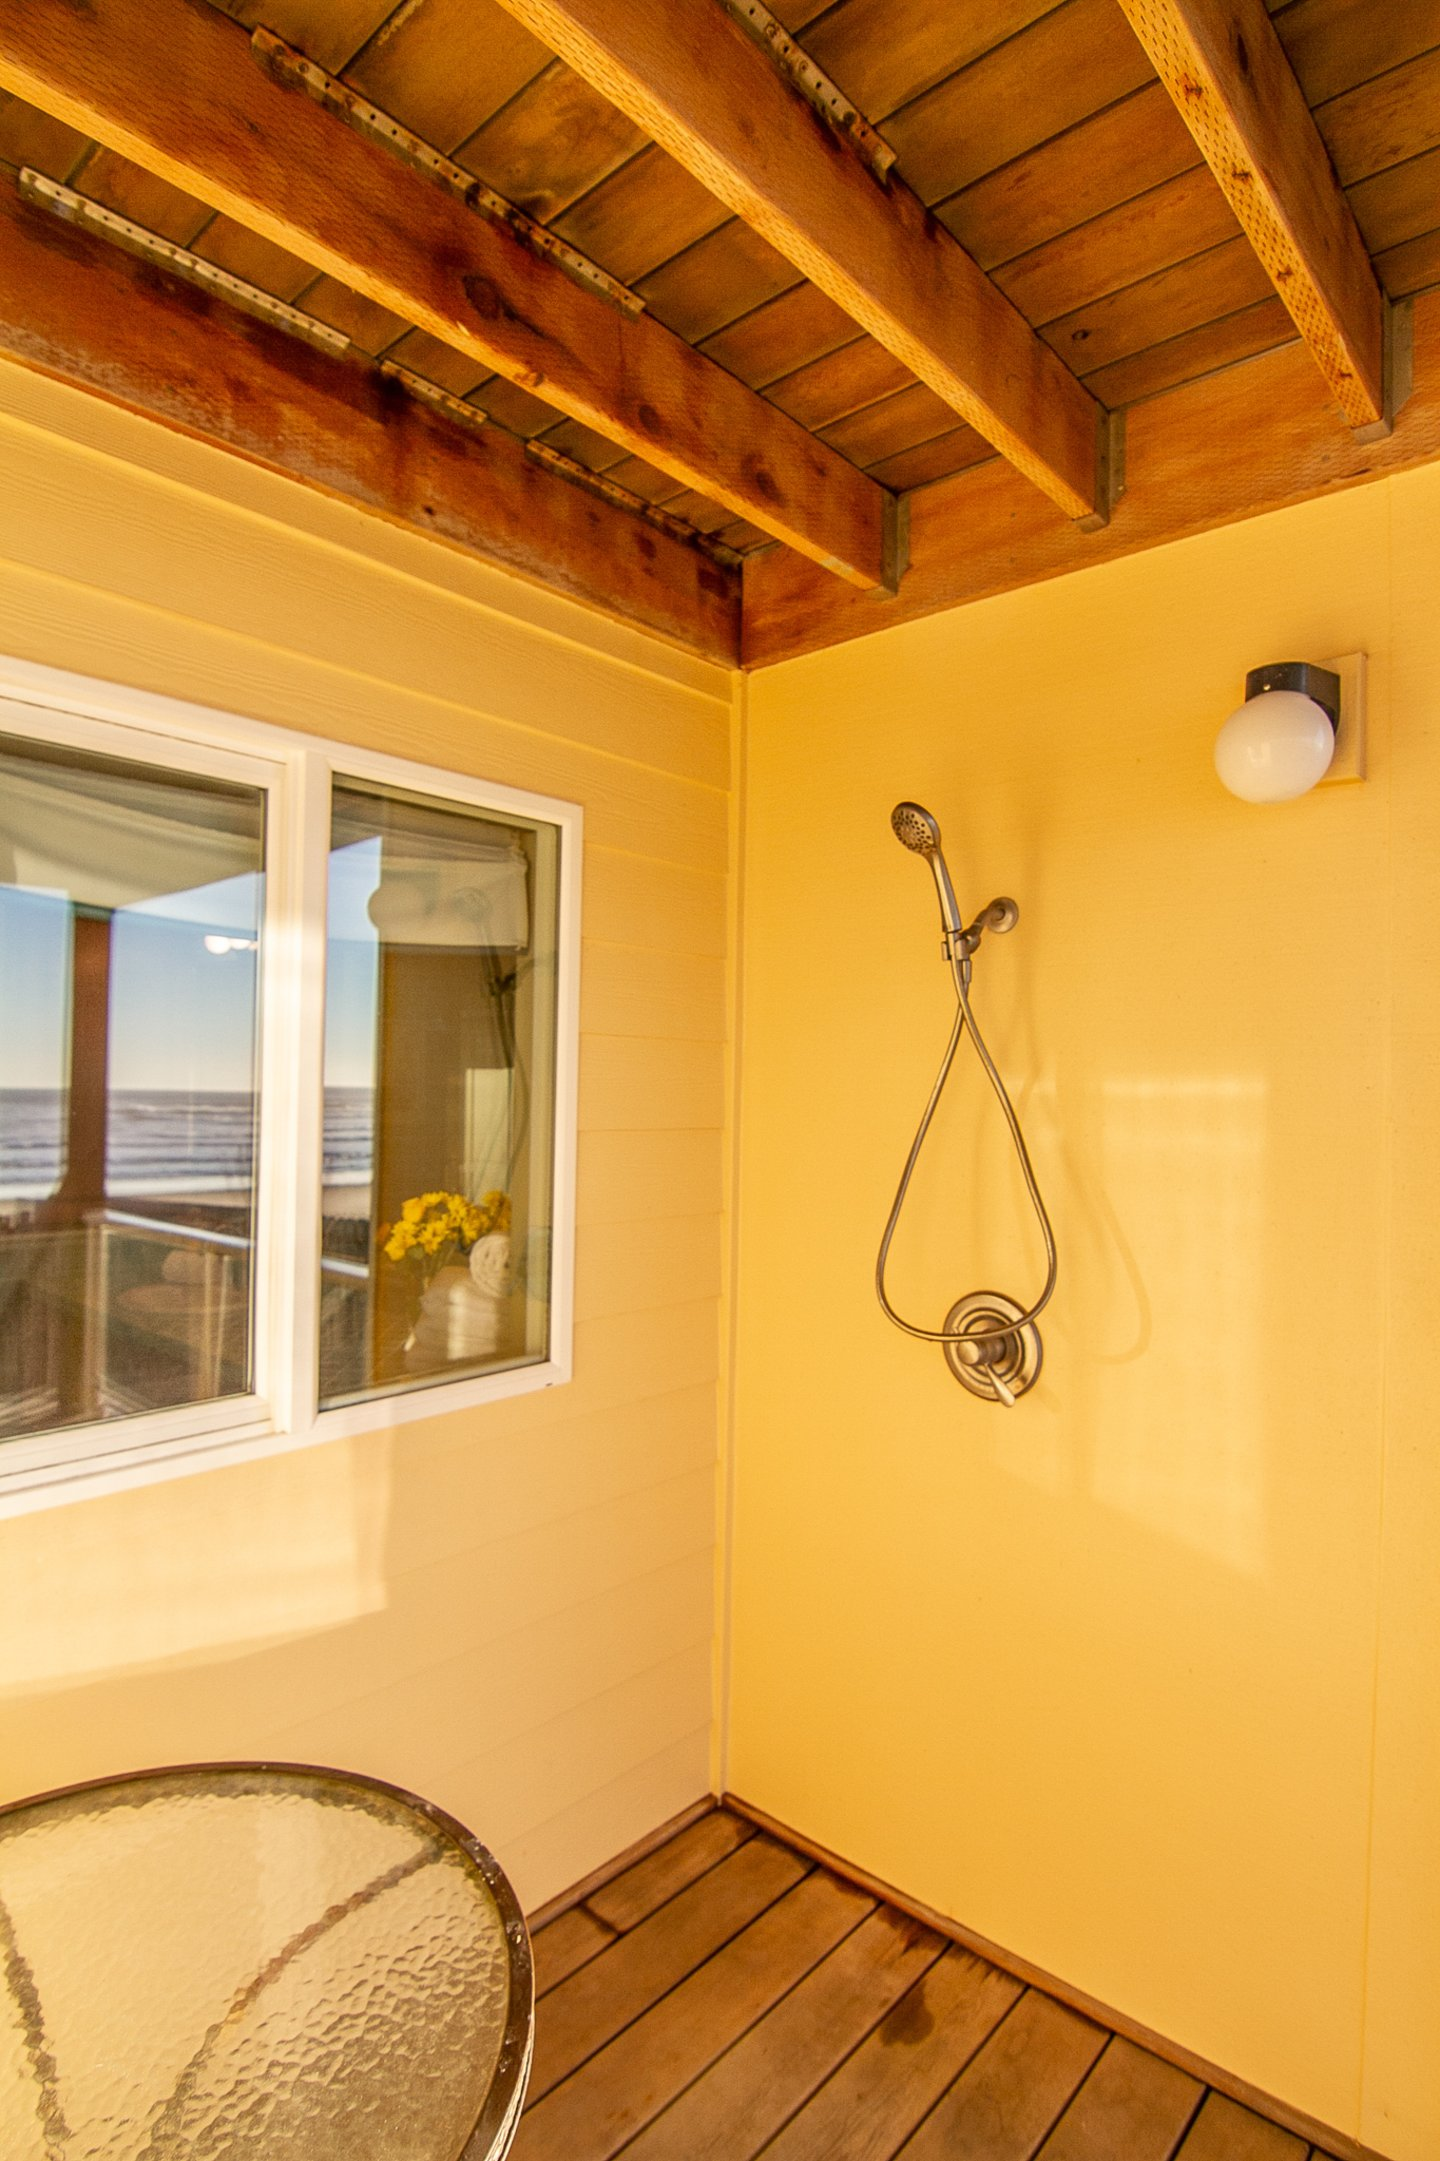 Rinse off from your walk on the beach with the outdoor shower.